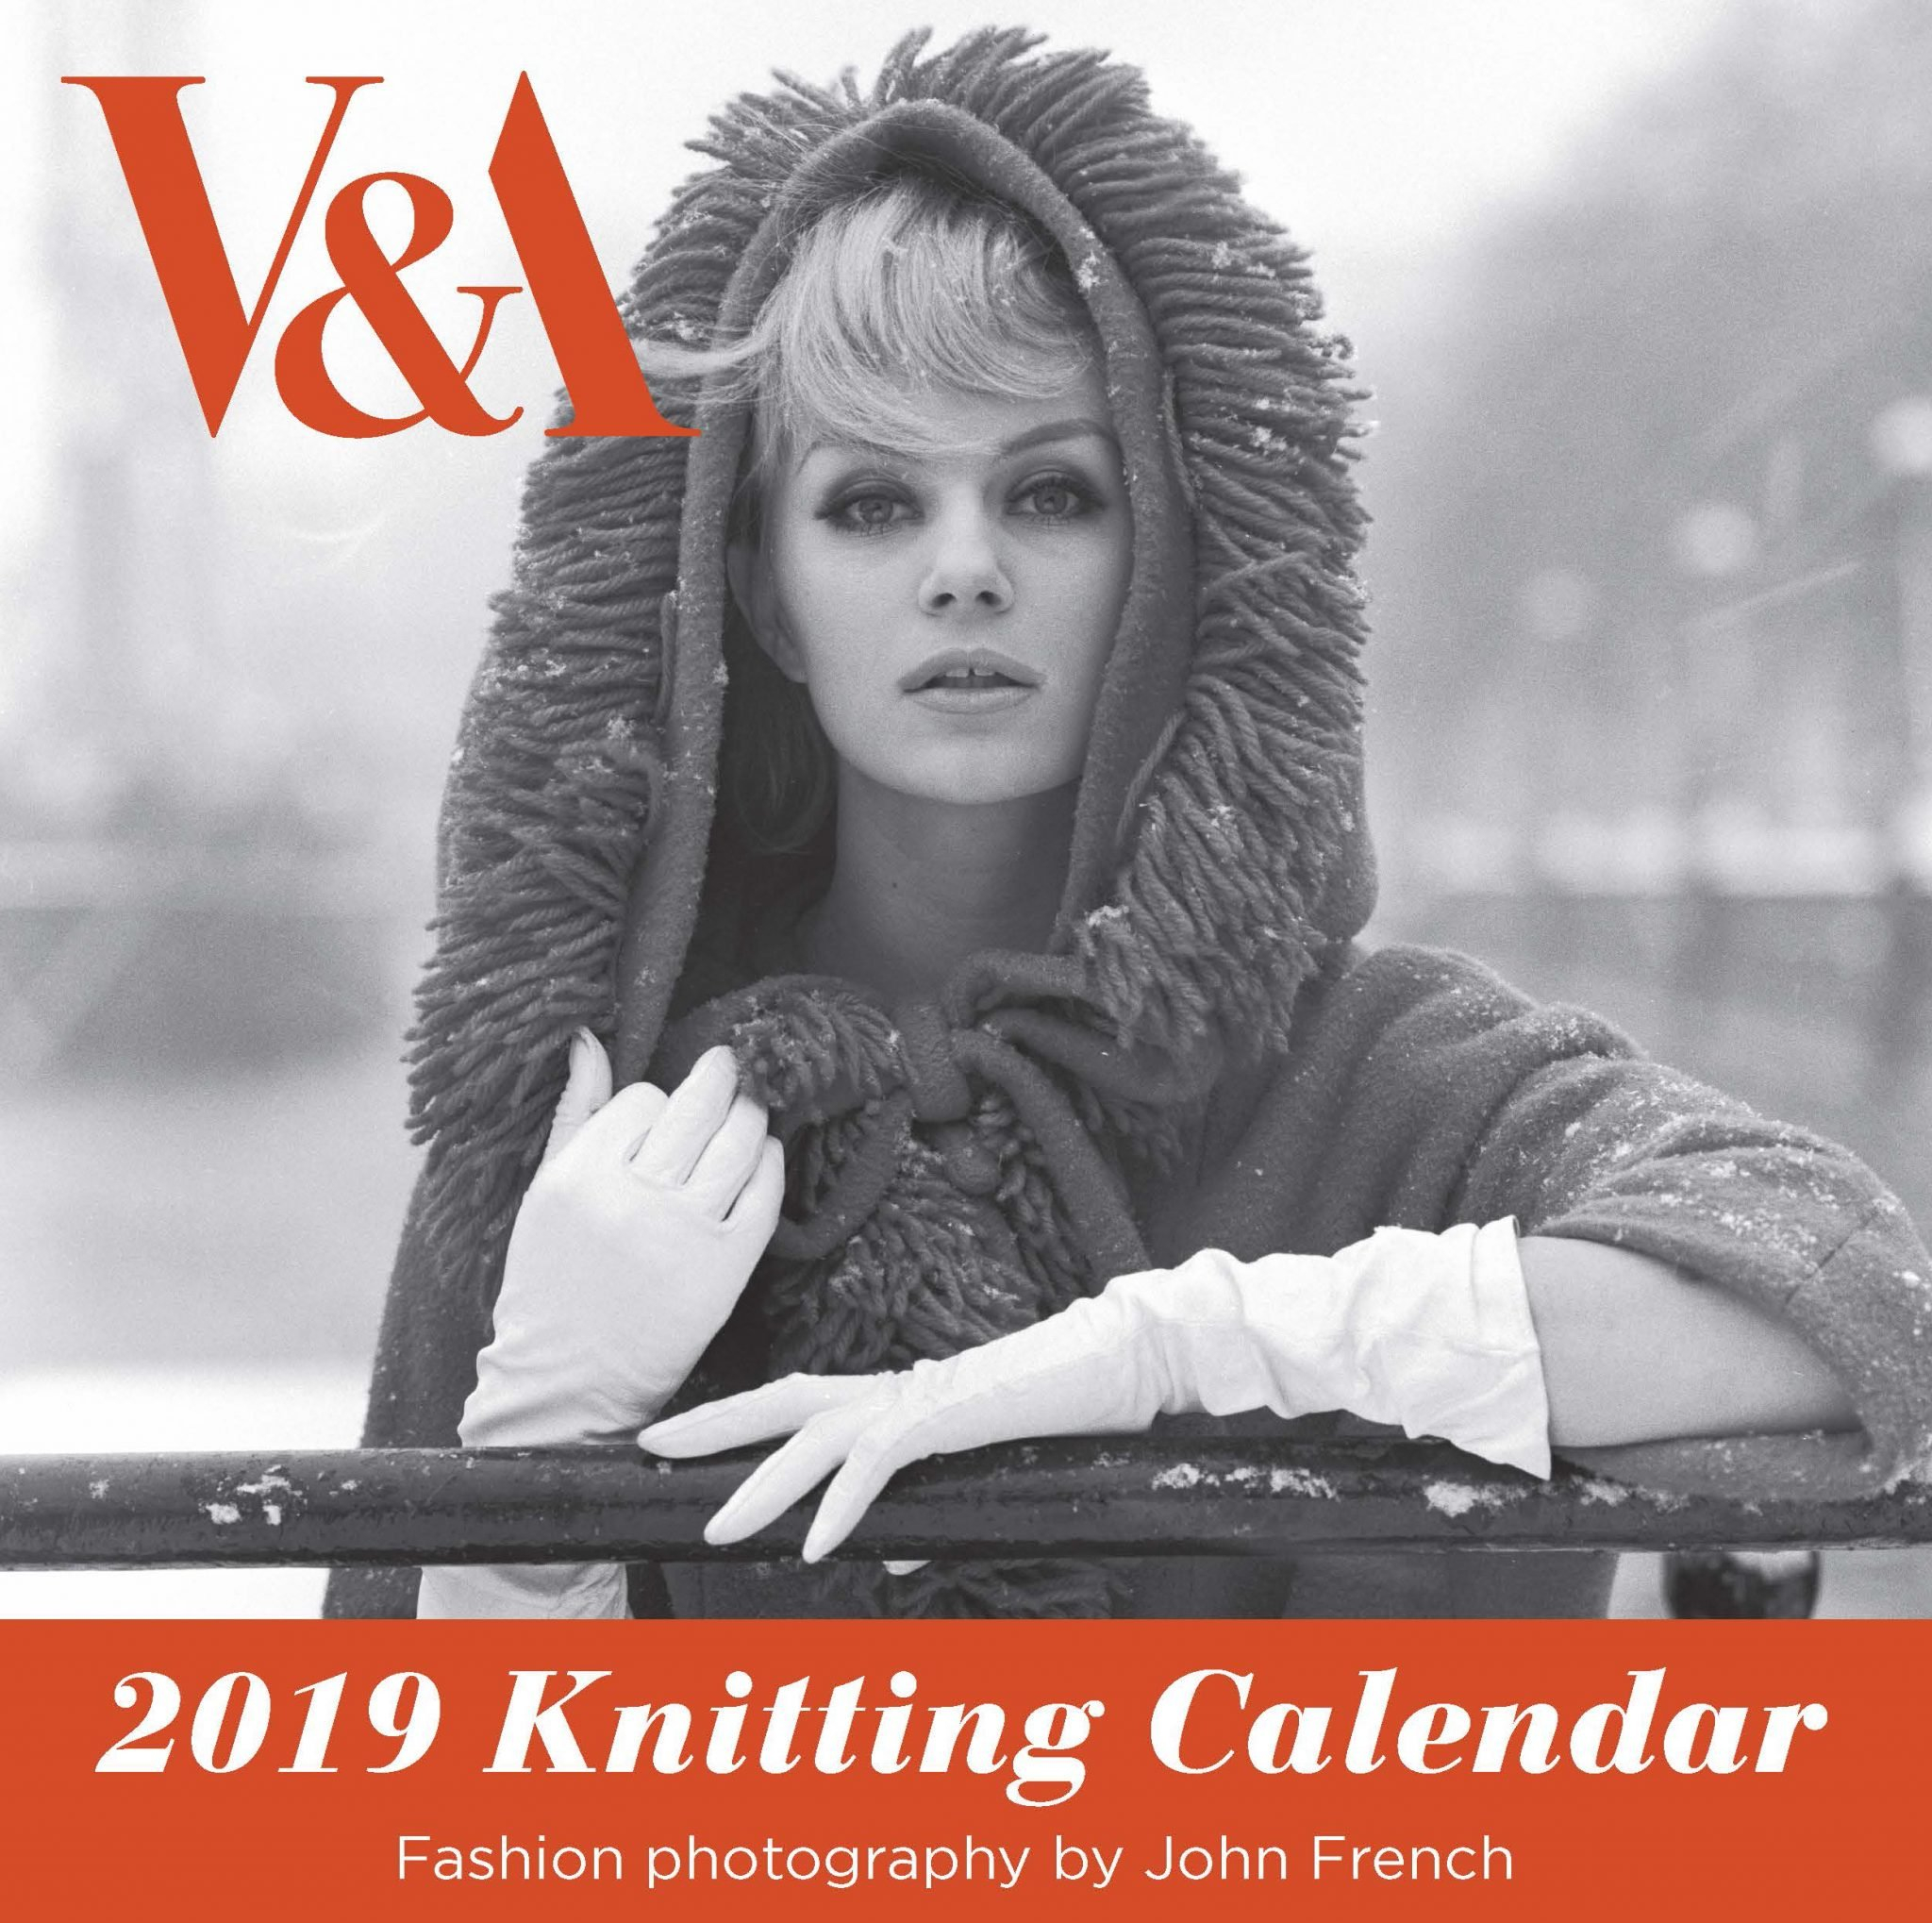 Win Tickets To The V&a - Your Chance To Win Tickets To The V&a Museum V&a Calendar 2019